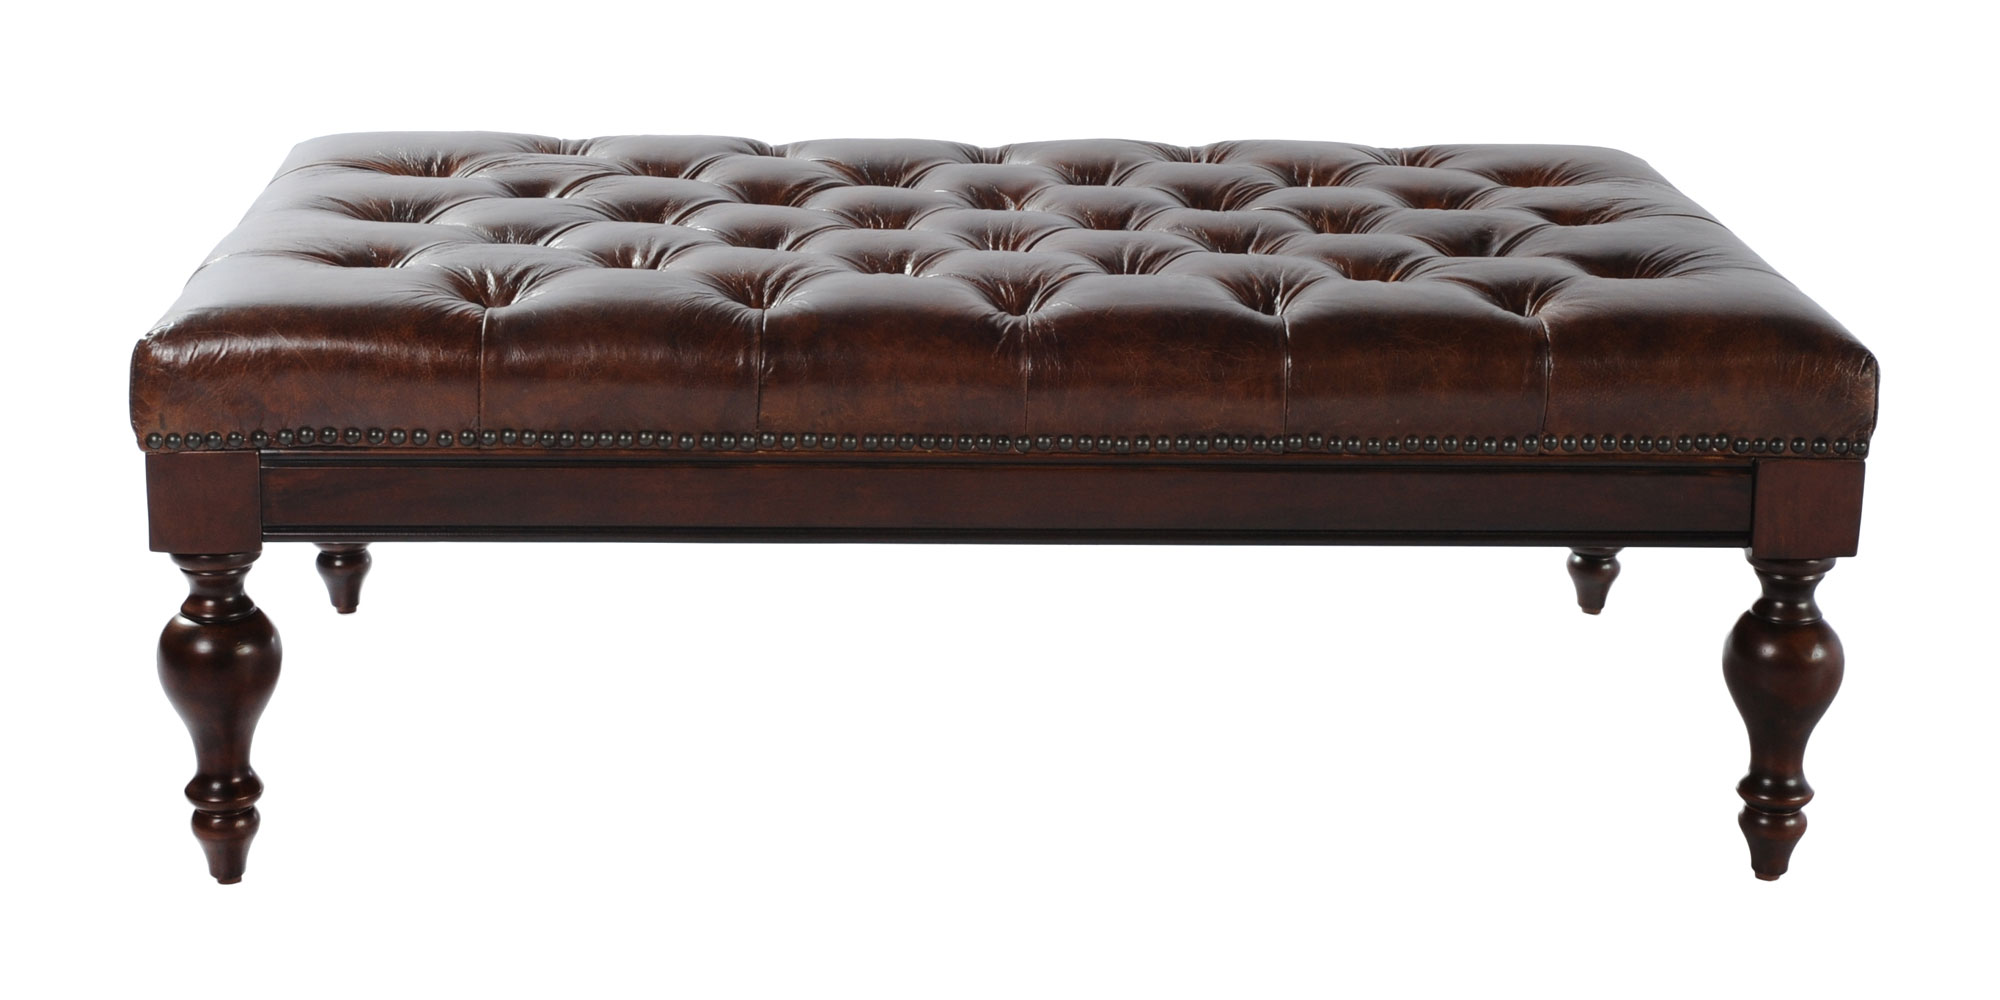 Carroll quotReady To Shipquot Leather Bench Ottoman Ottomans  : carroll ready to ship leather bench ottoman 9 from www.clubfurniture.com size 2000 x 1000 jpeg 152kB